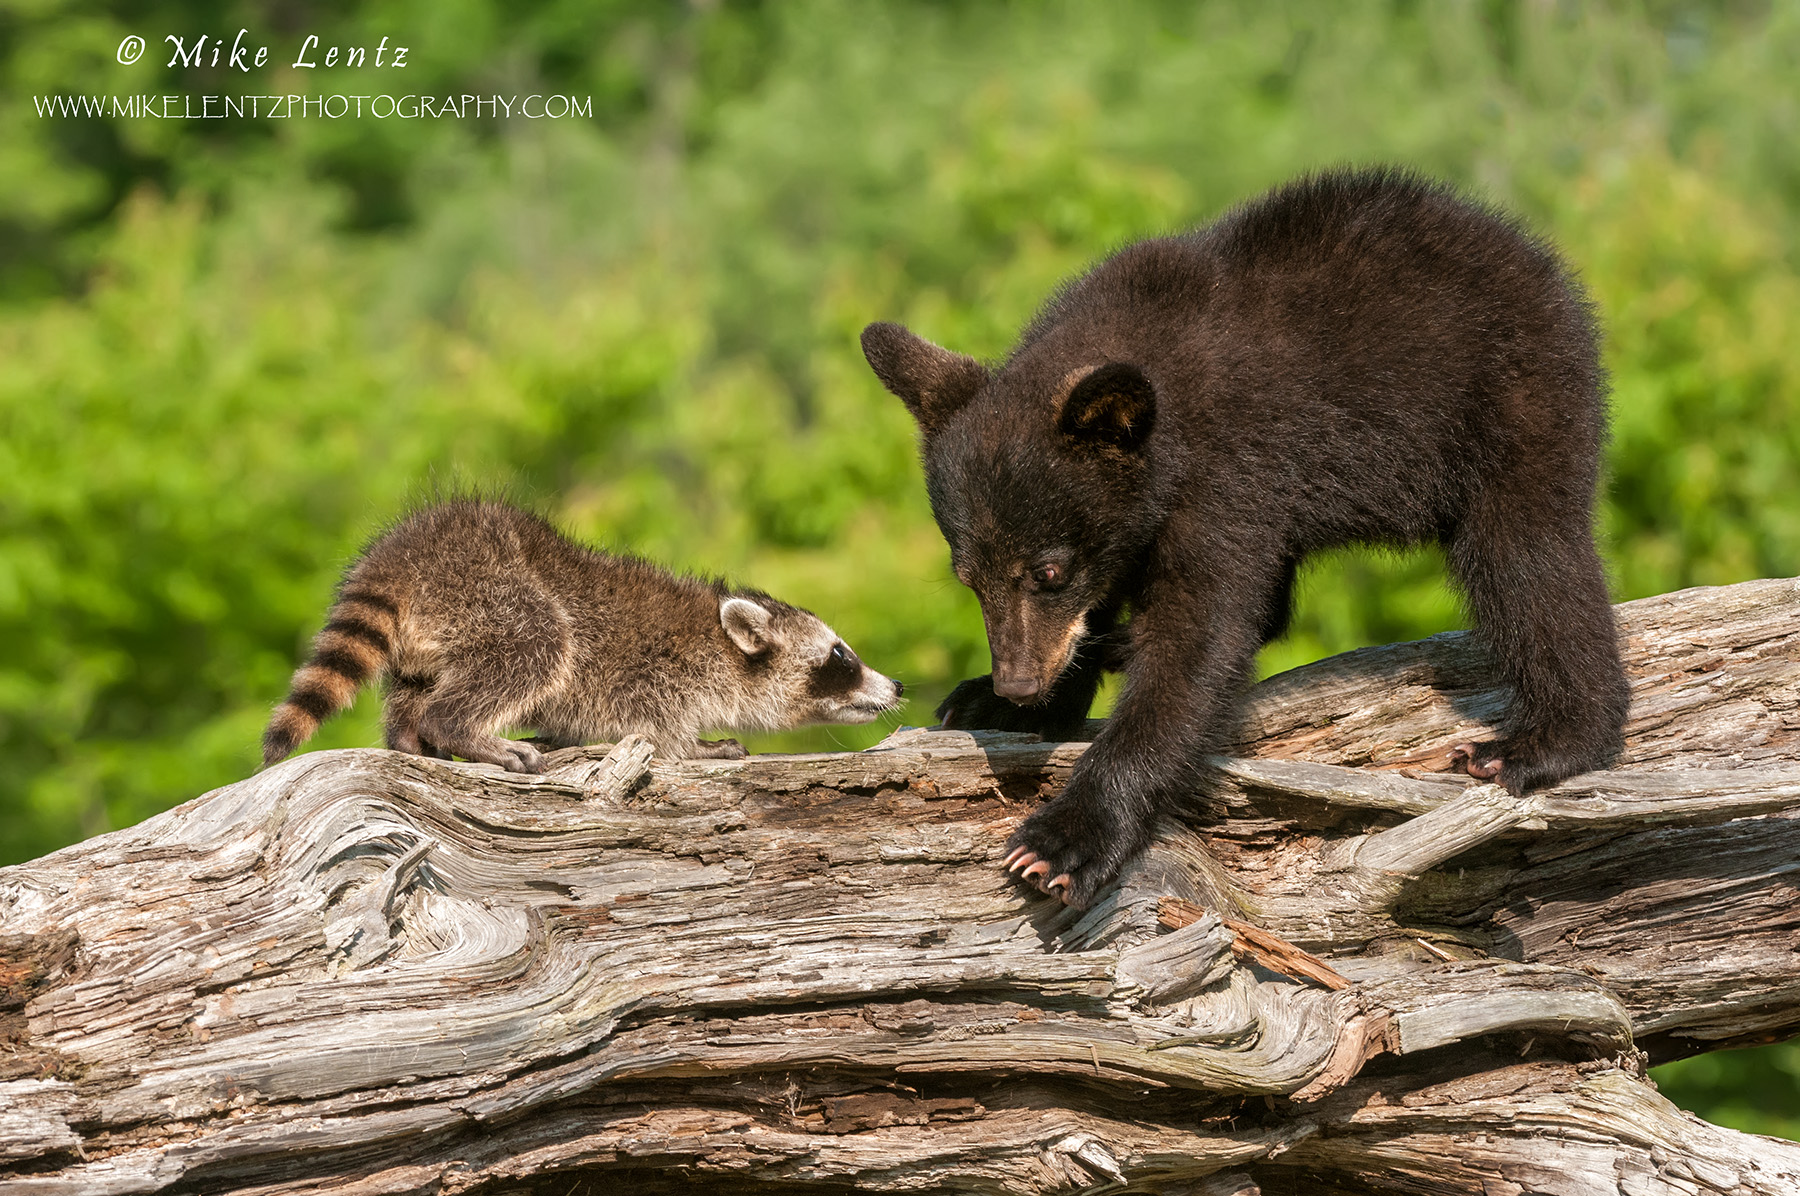 Baby Bear cub encounters a young Racoon